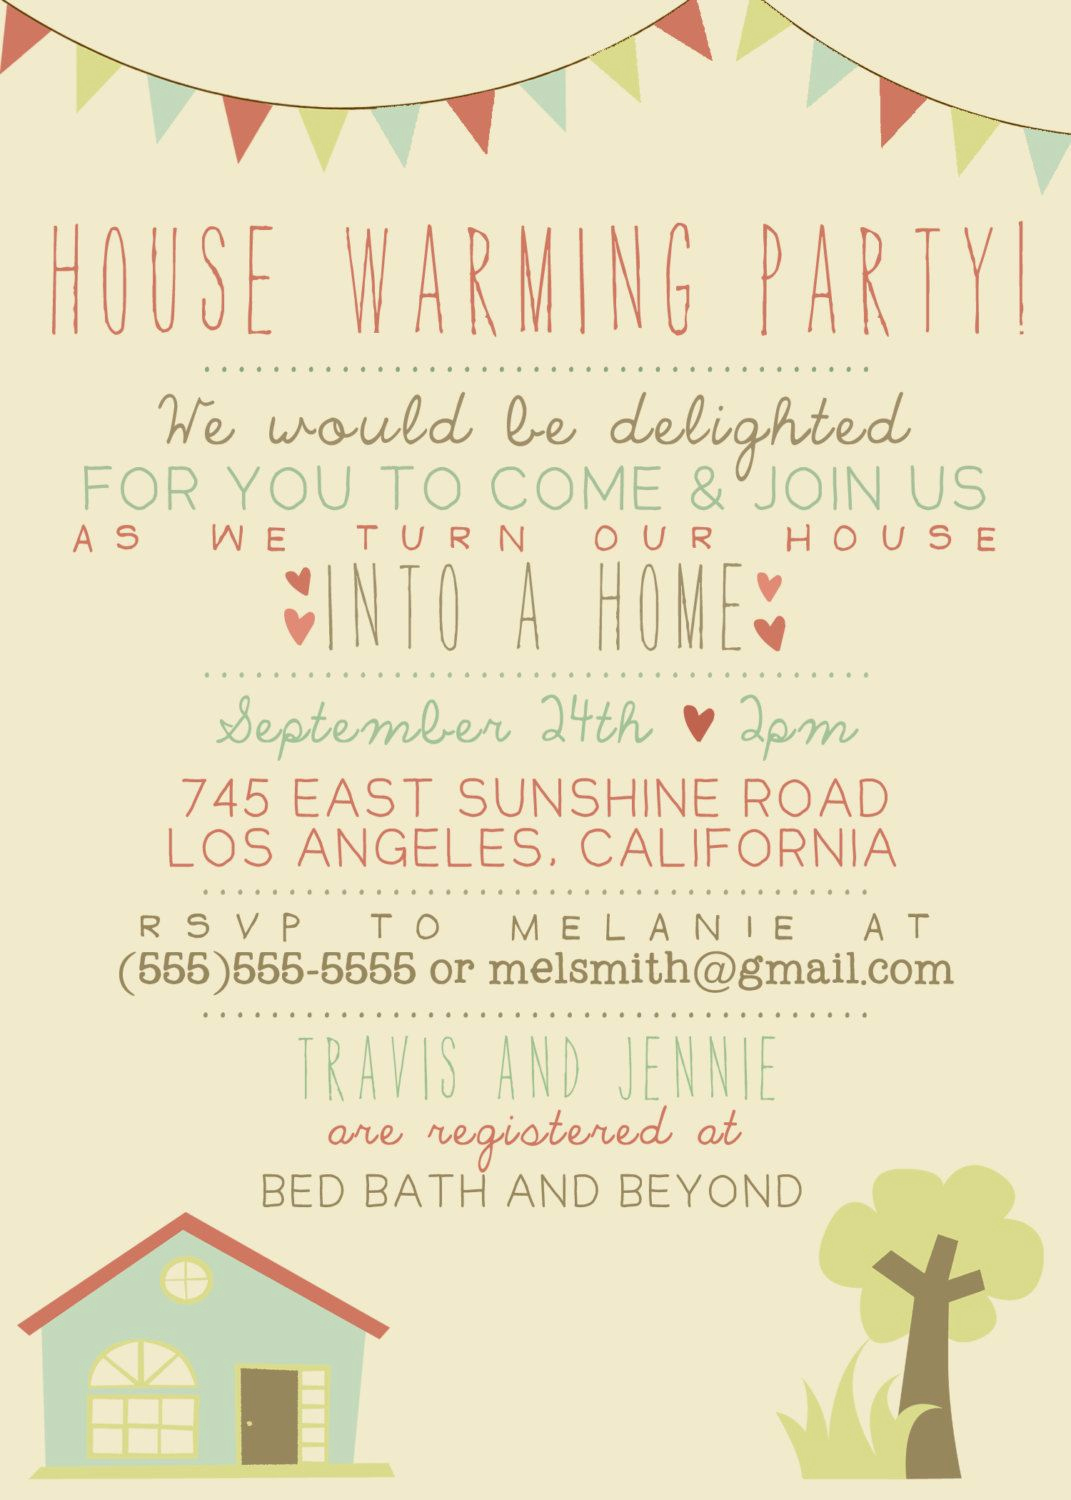 Housewarming Party Invitation Templates Inspirational House Warming Party Invitation Printable Custom Diy